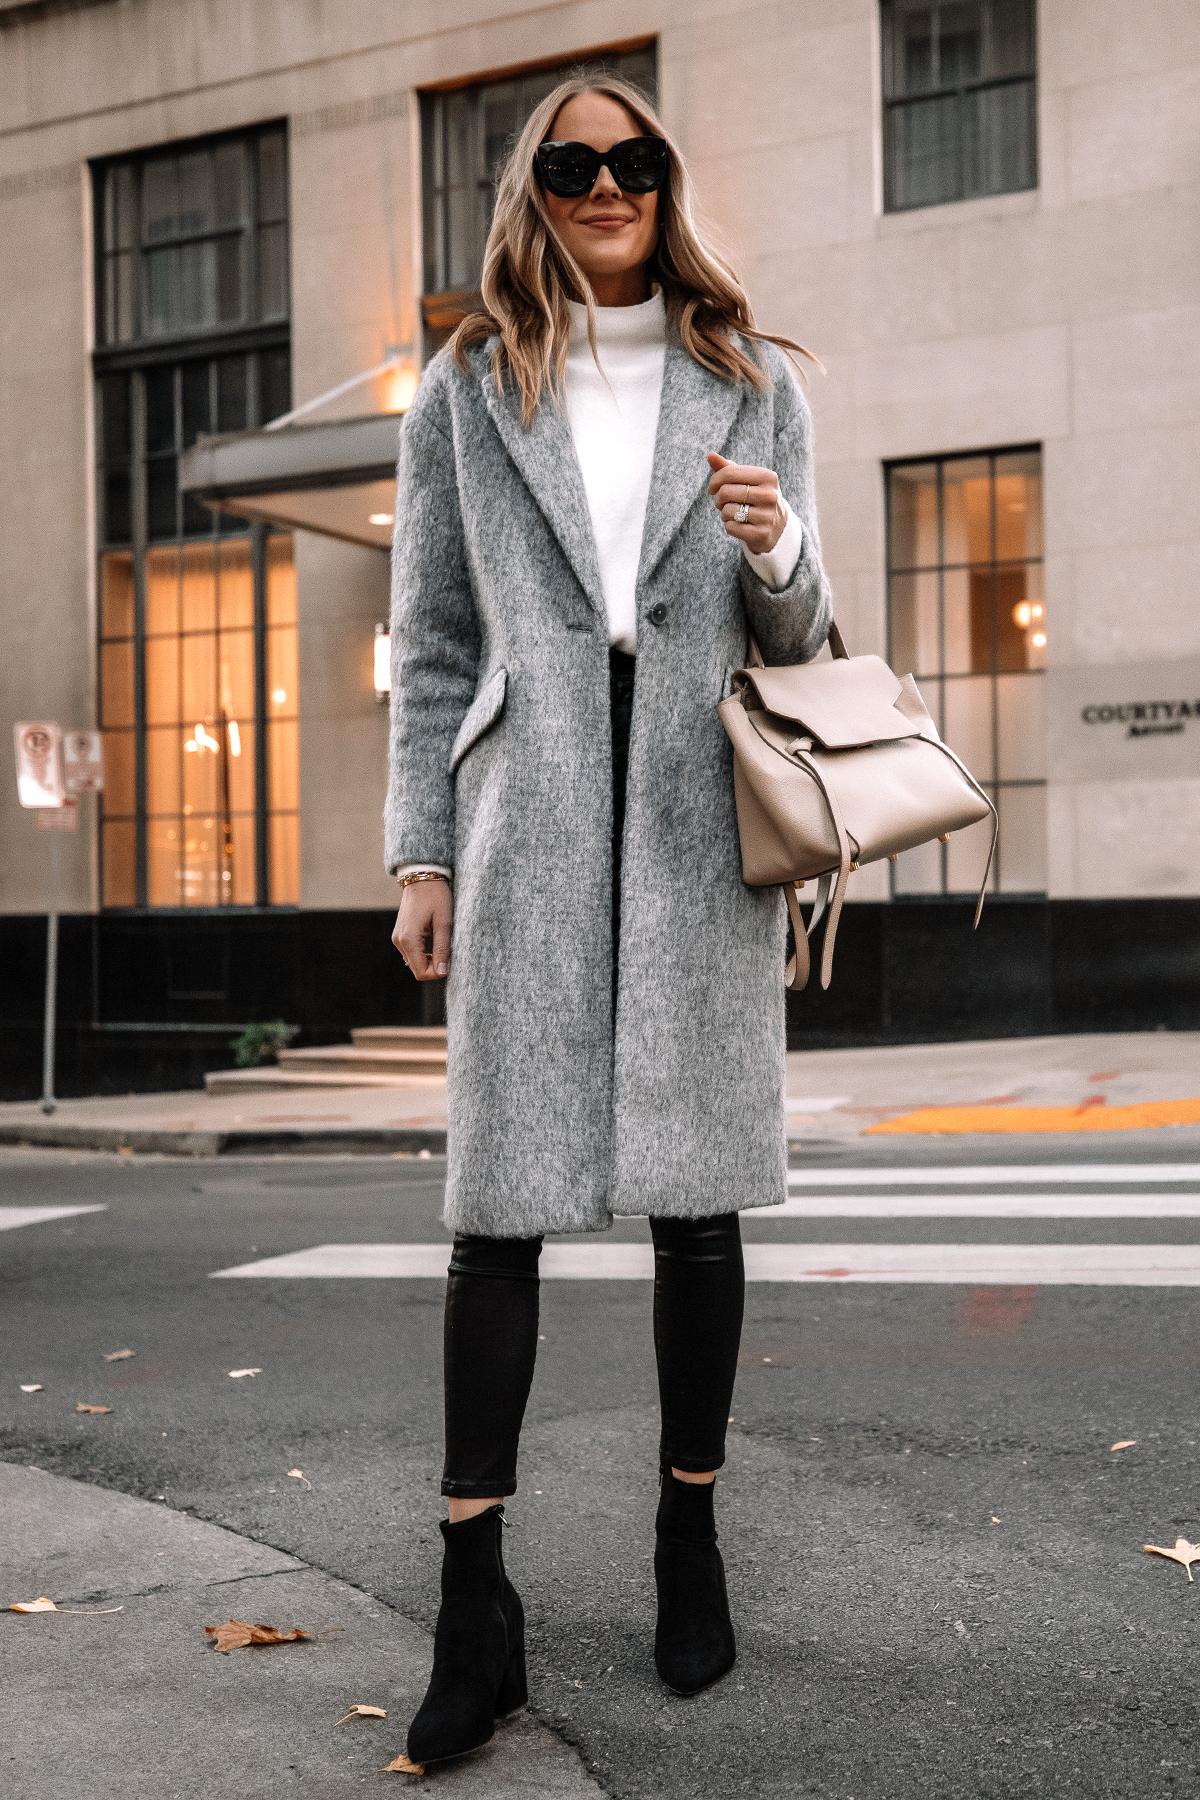 Fashion Jackson Wearing Express Long Grey Coat White Sweater Black Coated Skinny Jeans Black Suede Booties Winter Outfit Street Style 2